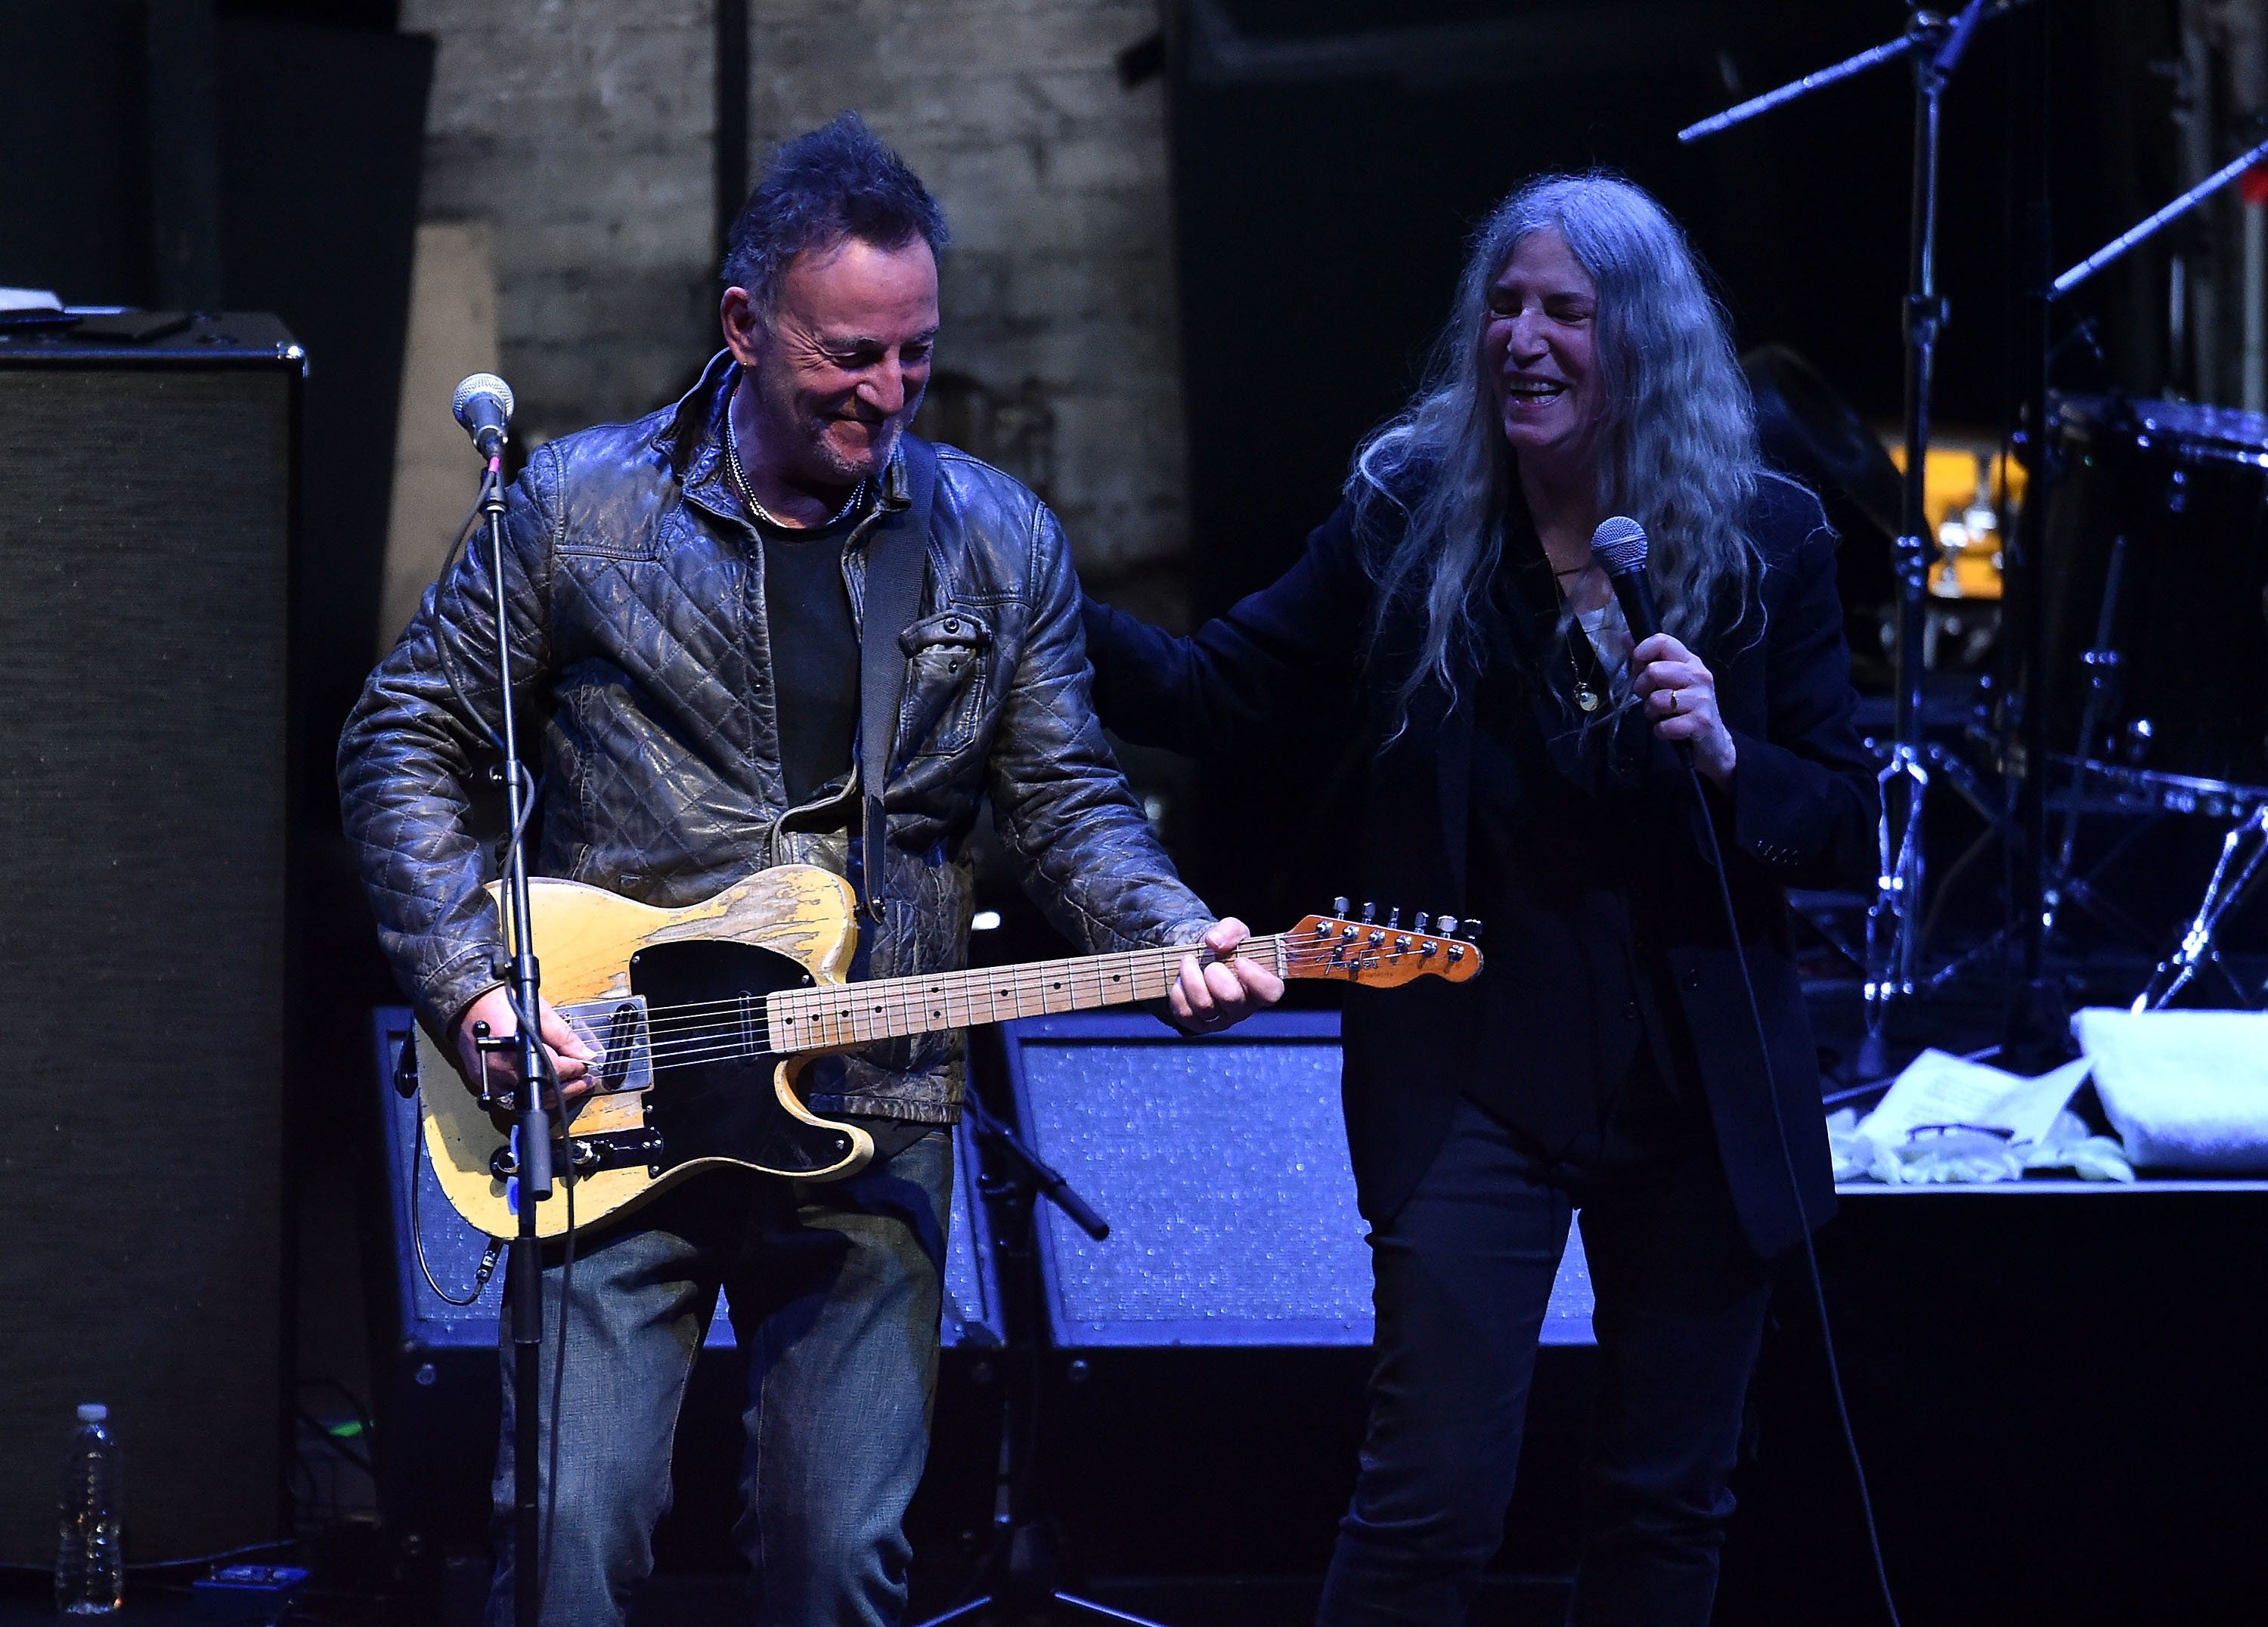 NEW YORK, NY - APRIL 23:  Bruce Springsteen and Patti Smith perform at 'Horses: Patti Smith and Her Band' - 2018 Tribeca Film Festival at Beacon Theatre on April 23, 2018 in New York City.  (Photo by Theo Wargo/Getty Images for Tribeca Film Festival)